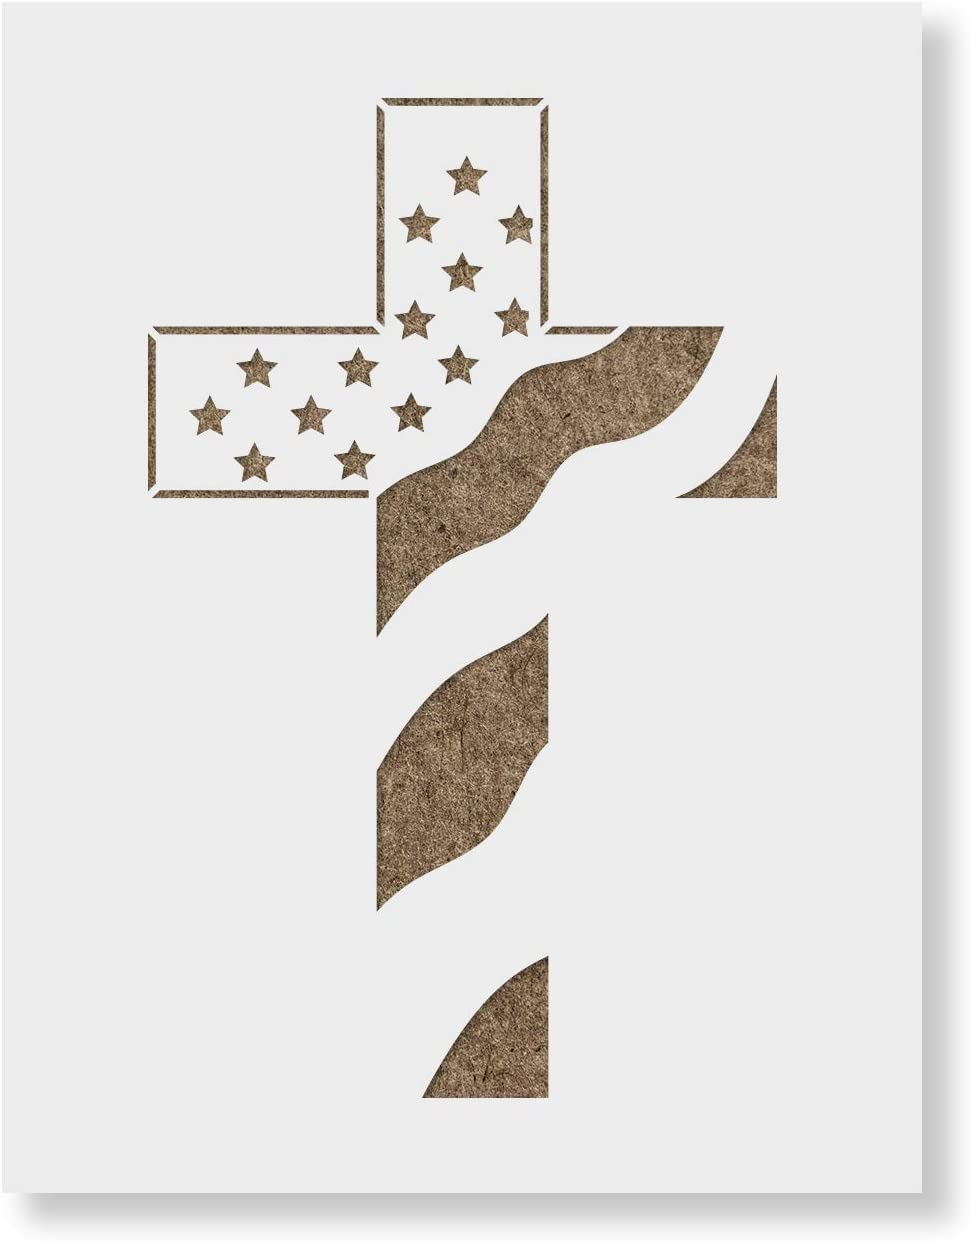 Reusable Stencils for Painting in Small /& Large Sizes American Flag Cross Stencil Template